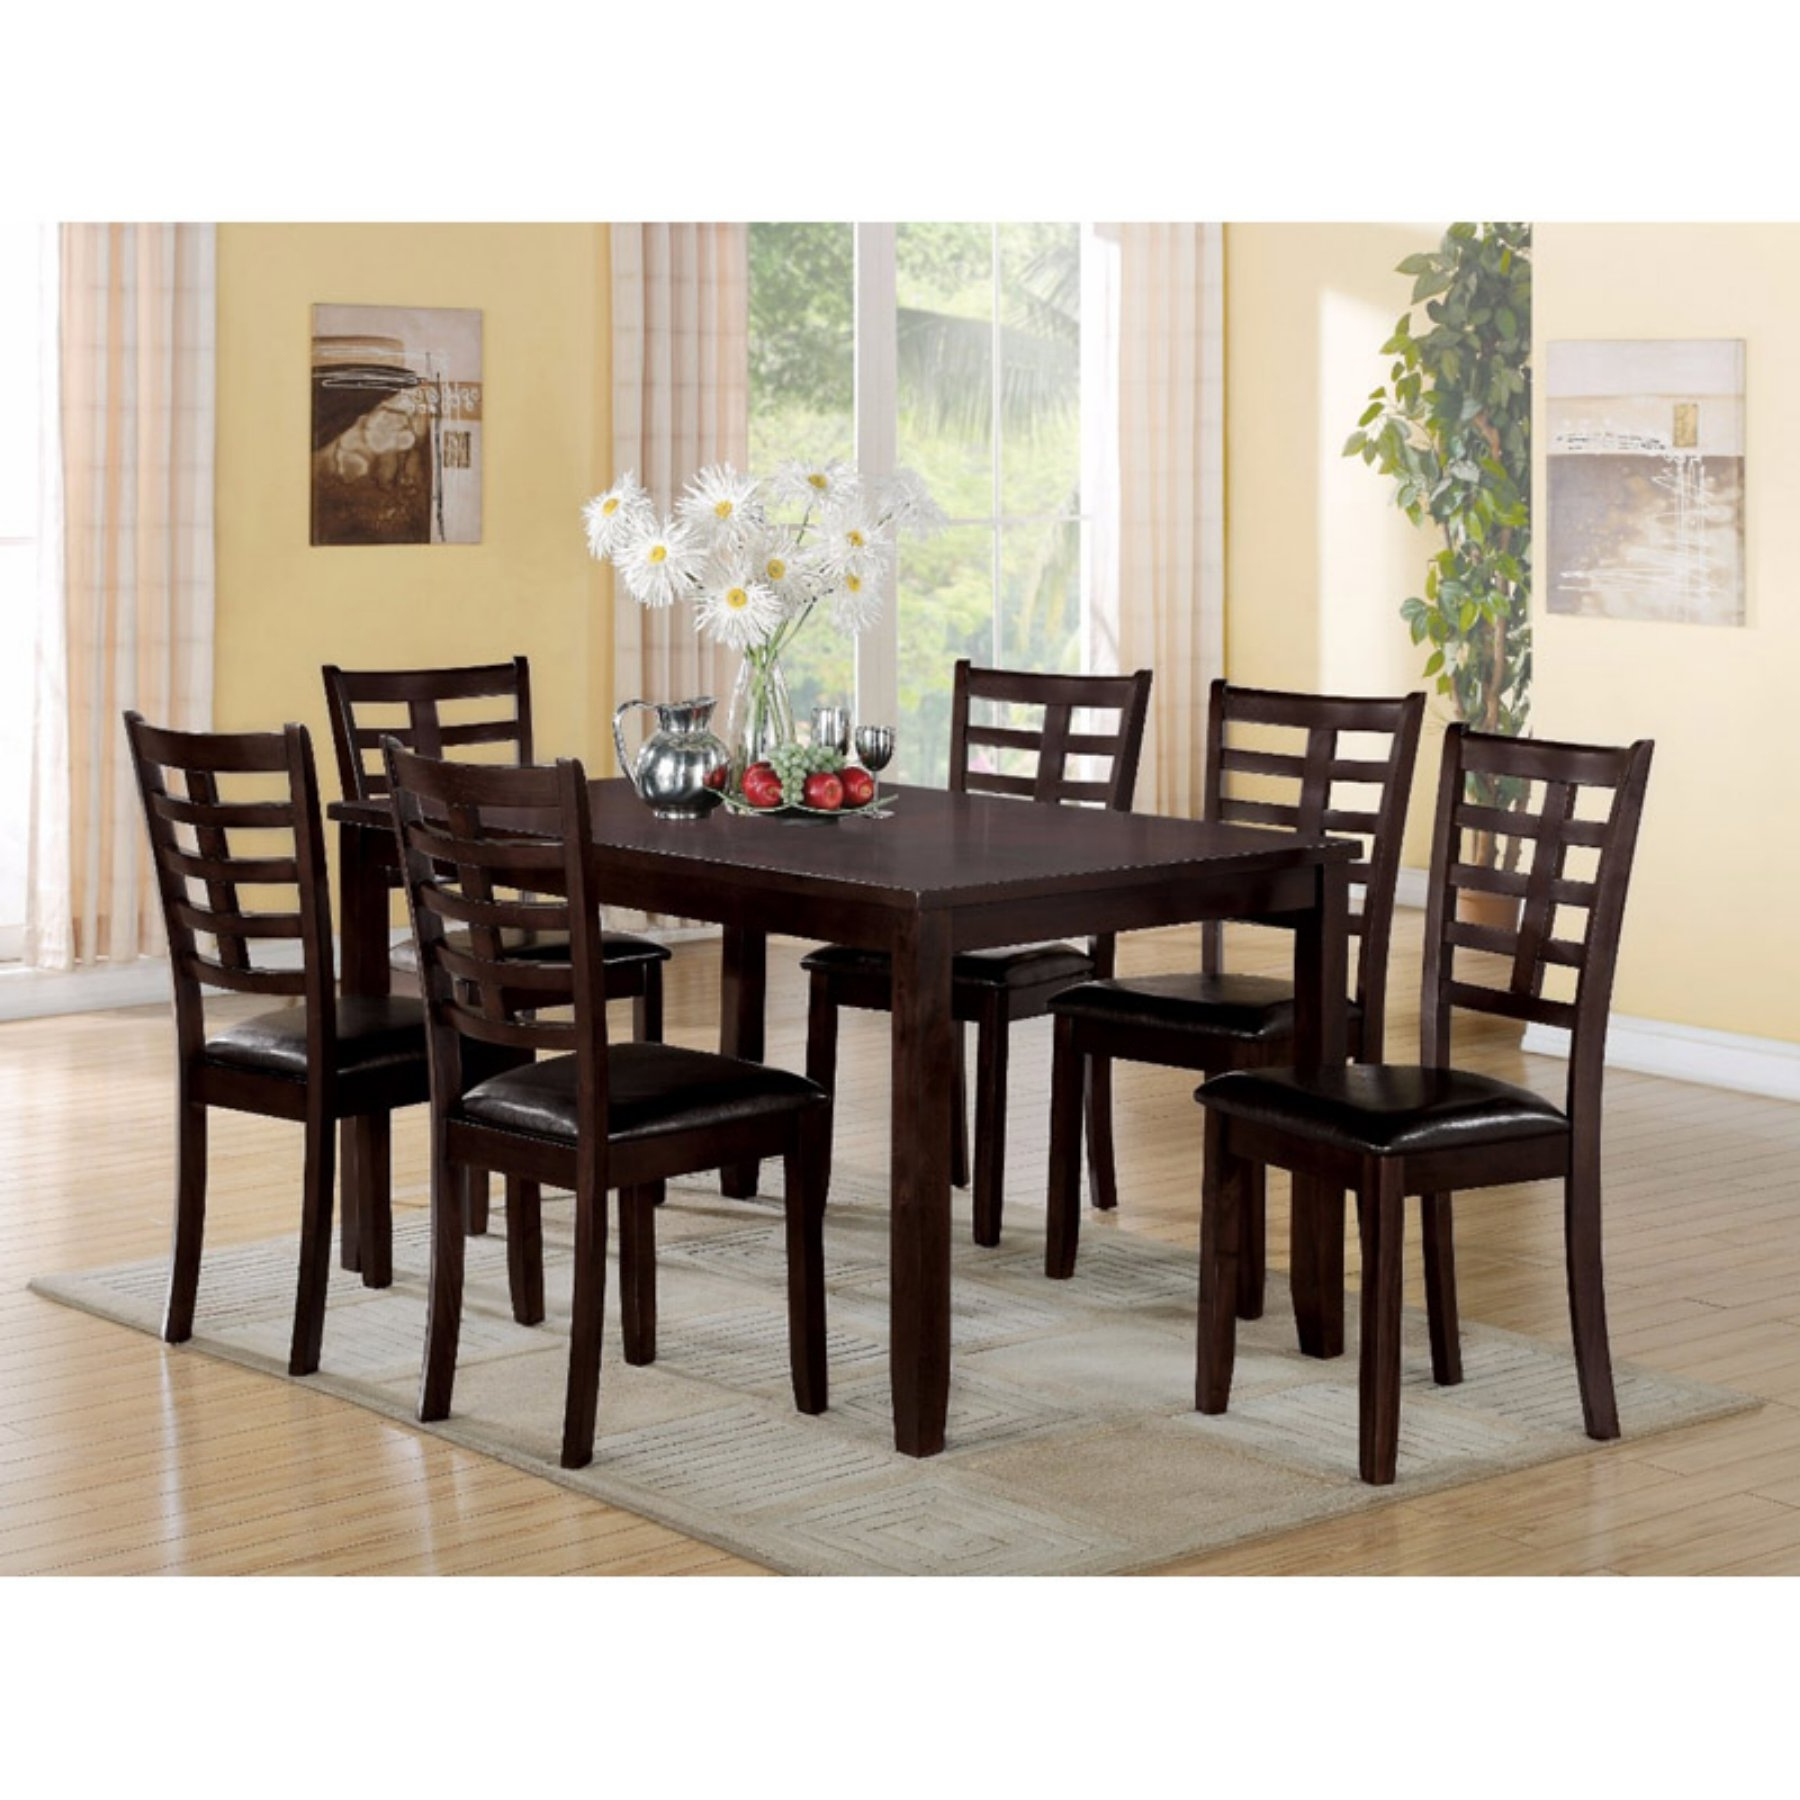 Market 7 Piece Dining Sets With Side Chairs Within Preferred Benzara Wooden 7 Piece Rectangular Dining Table Set In 2018 (Gallery 12 of 25)